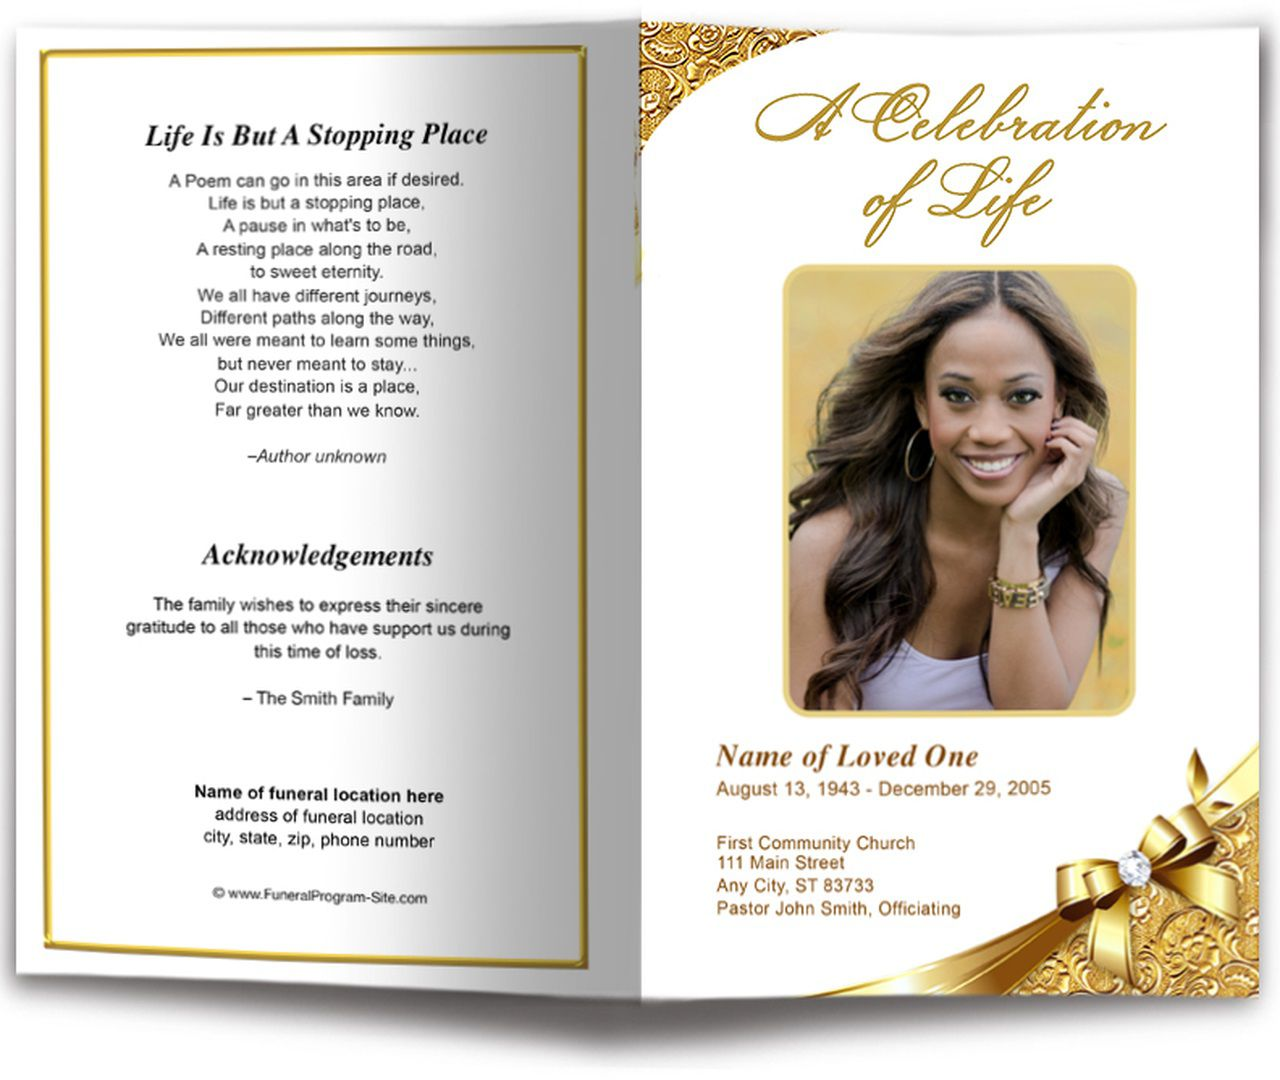 007 Astounding Funeral Program Template Free Example  Printable DesignFull